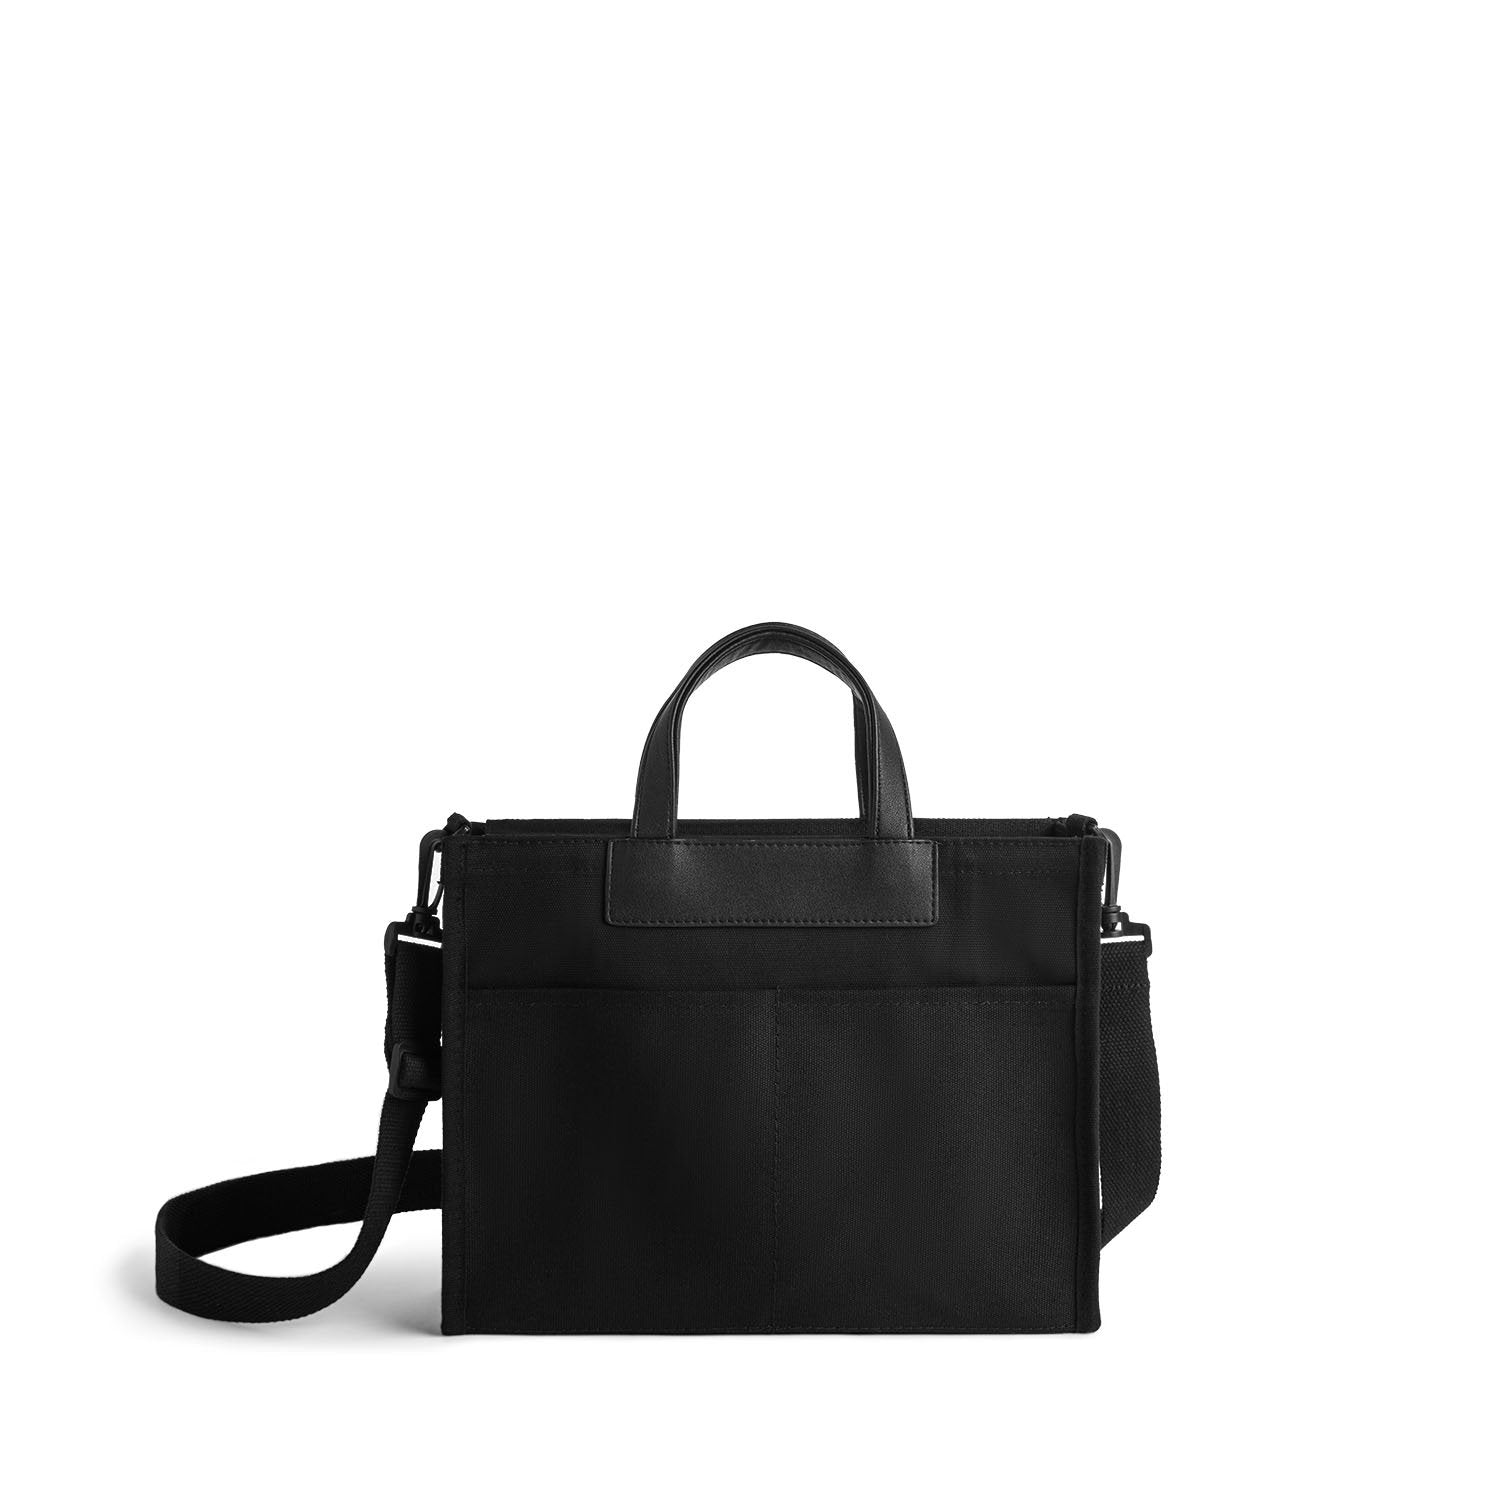 Furry Bag 73 (EB) - Black